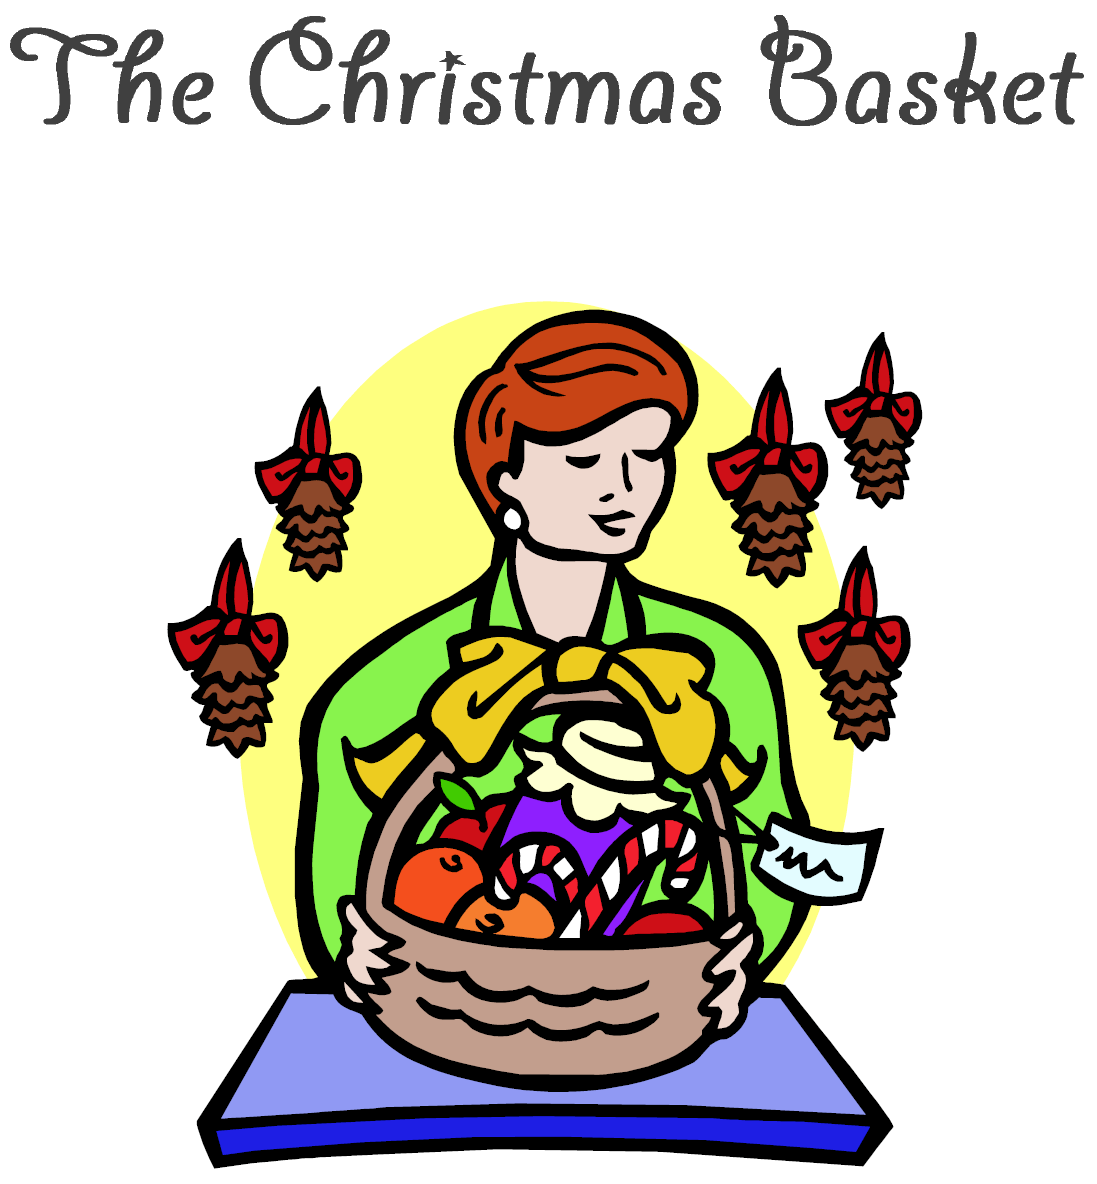 The Christmas Basket